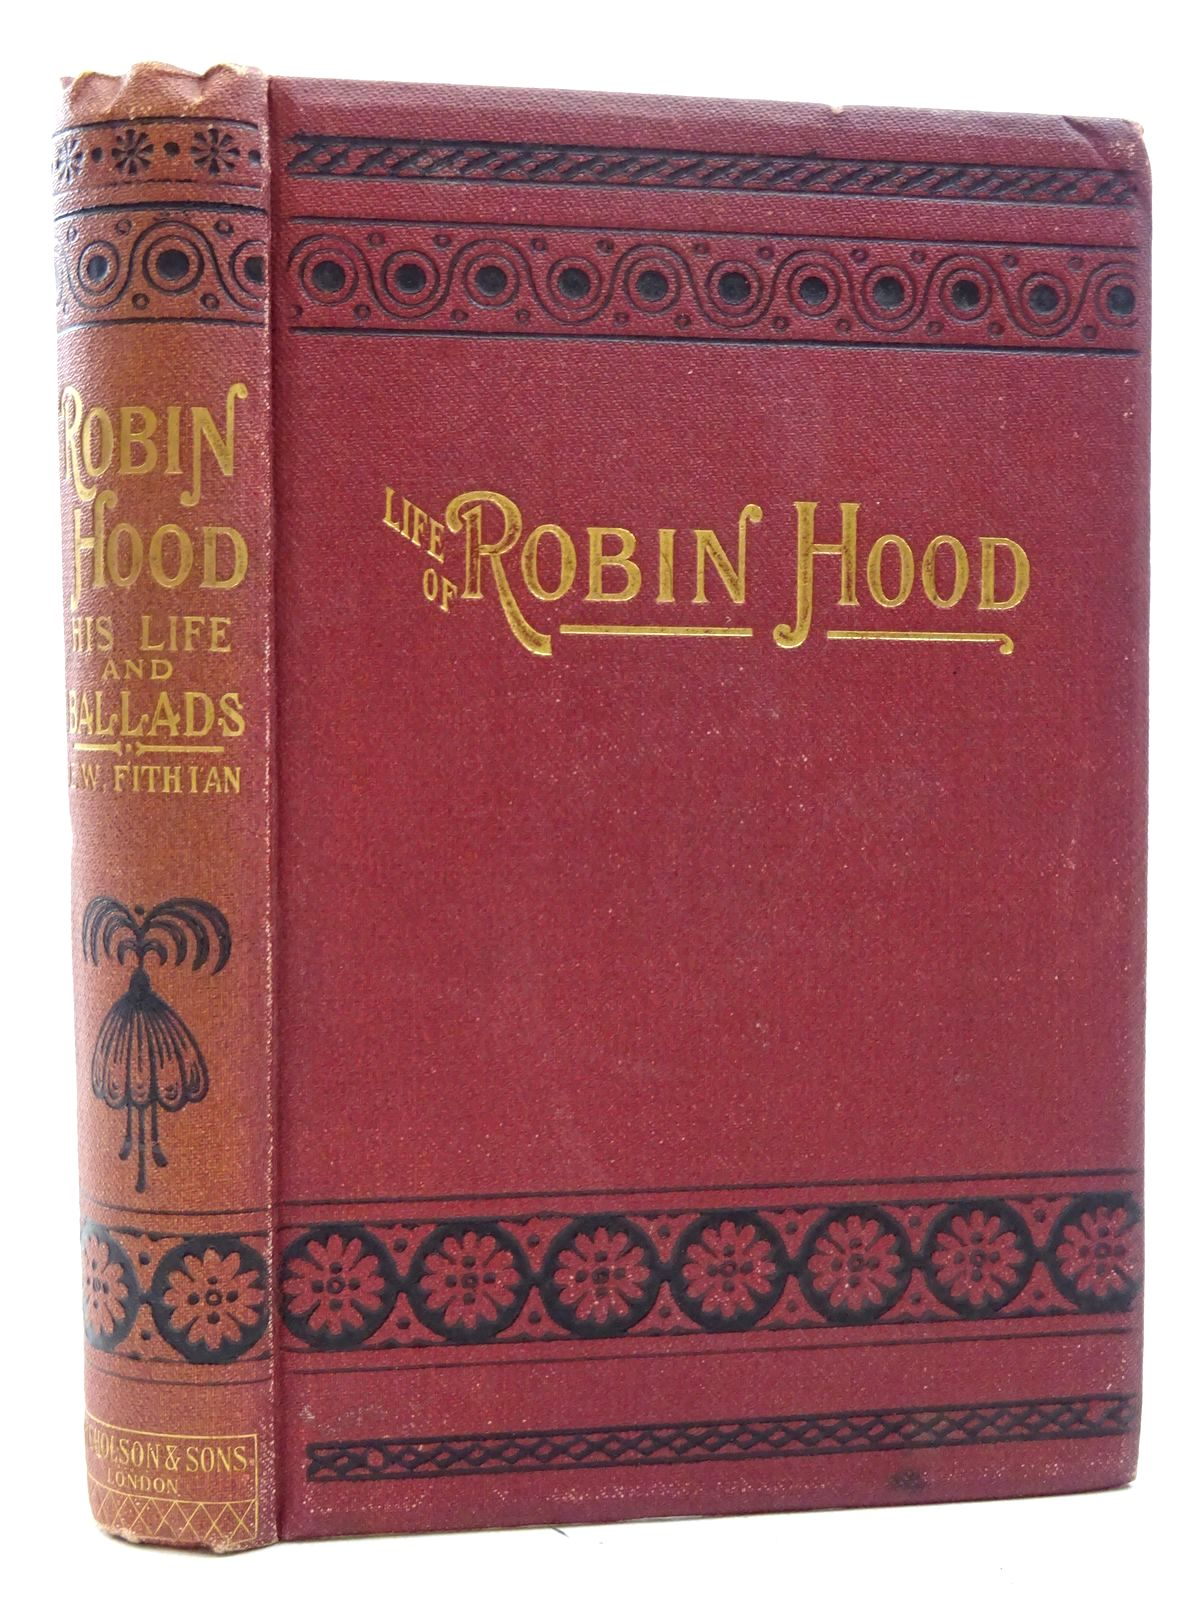 Photo of THE LIFE OF ROBIN HOOD, THE CELEBRATED OUTLAW written by Fithian, Edward William published by W. Nicholson & Sons Ltd. (STOCK CODE: 1317328)  for sale by Stella & Rose's Books